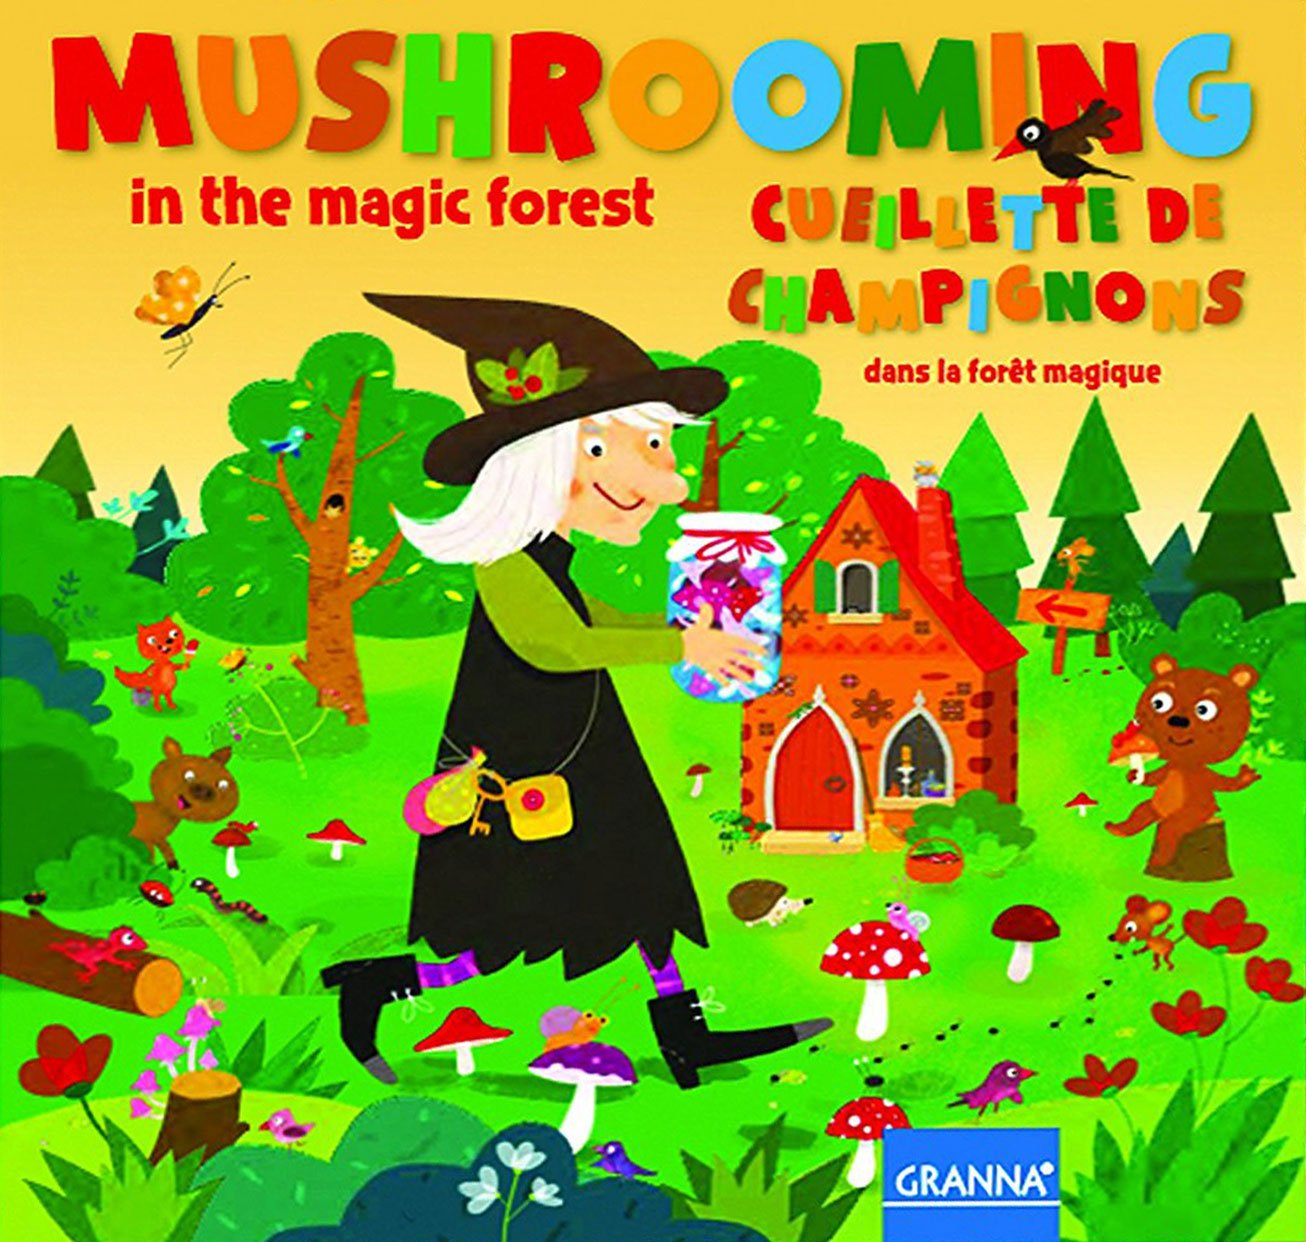 mushrooming-magic-forest